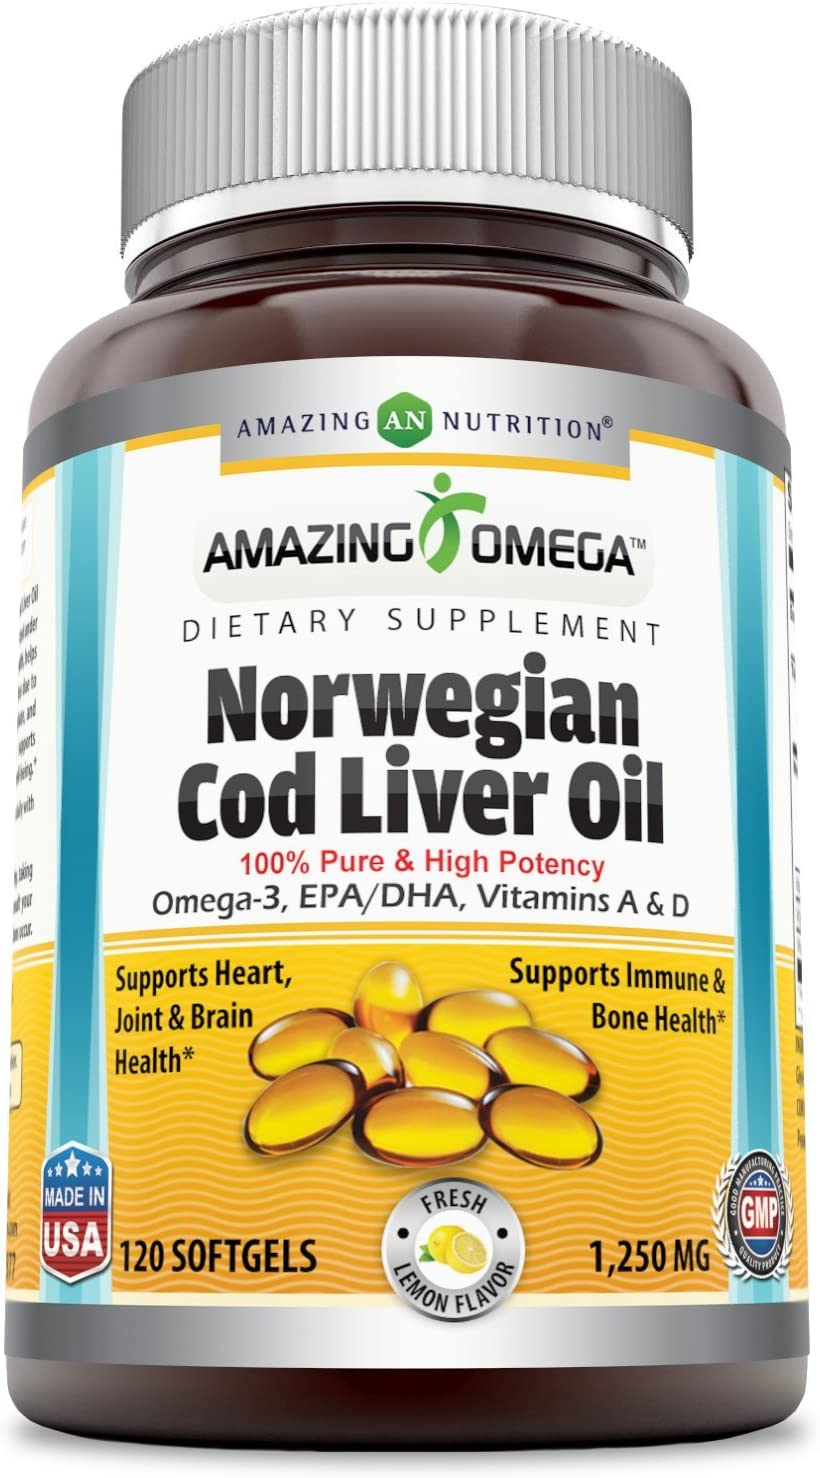 Amazing Omega Norwegian Cod Liver Oil - 1250 mg, 120 Softgels - Purest & Best Quality Cod Liver Oil, Extracted Under Strict Quality Standards from Around The Waters of Norway (Fresh Lemon Flavor)